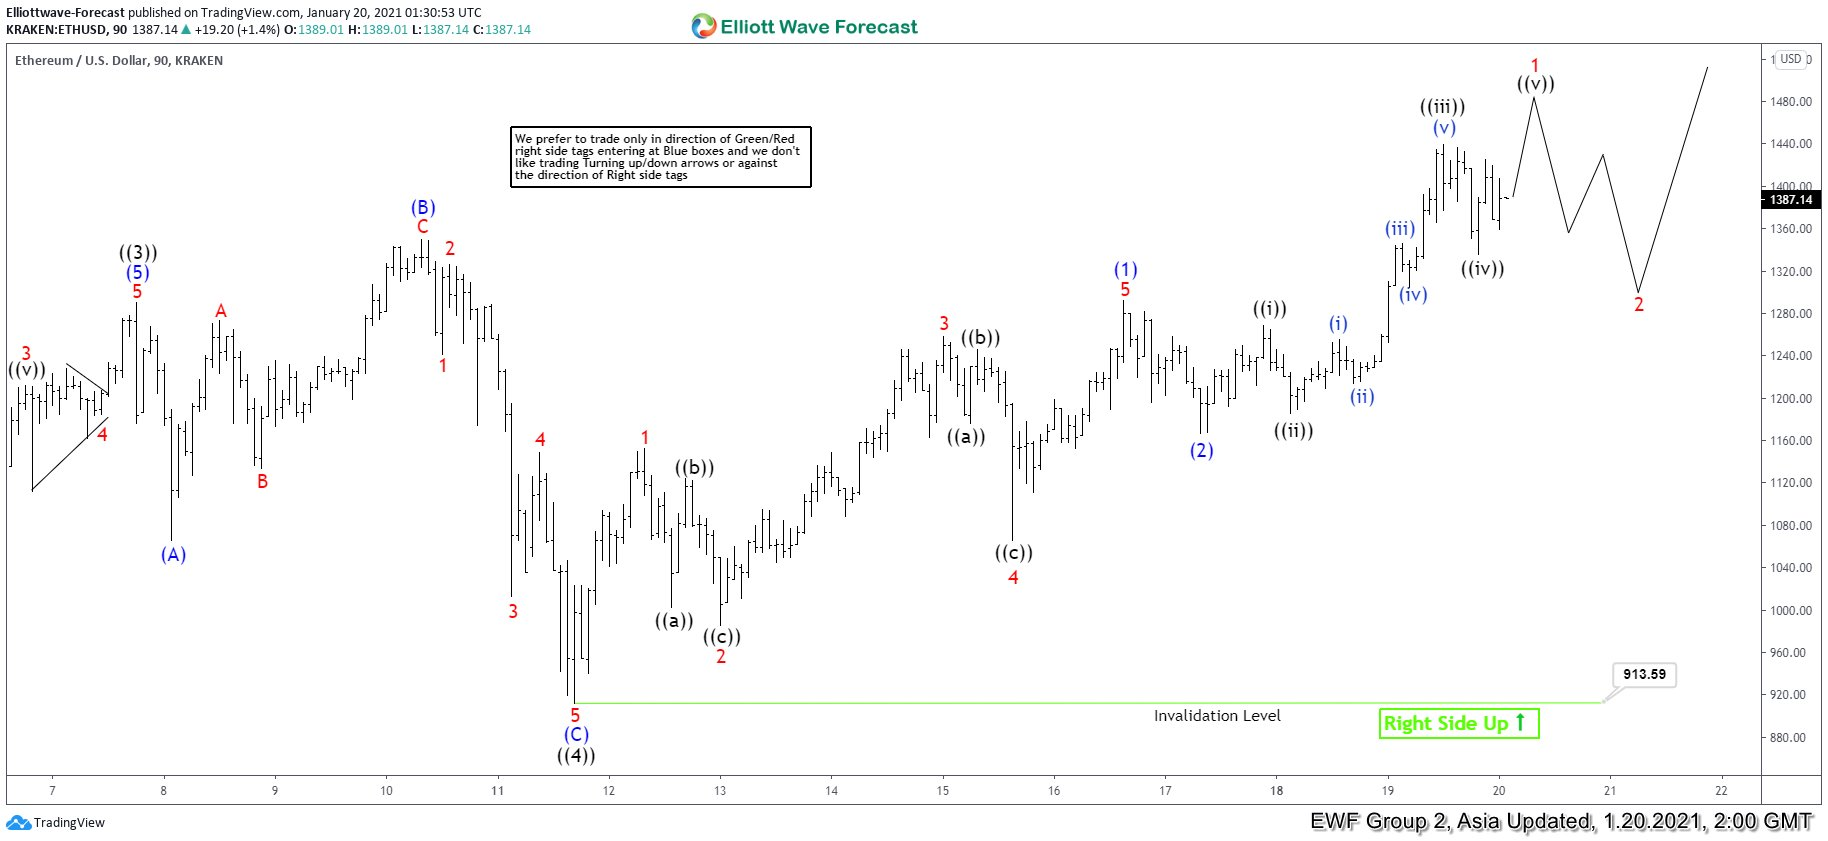 Elliott Wave View: Ethereum Has Resumed Higher in Wave 5